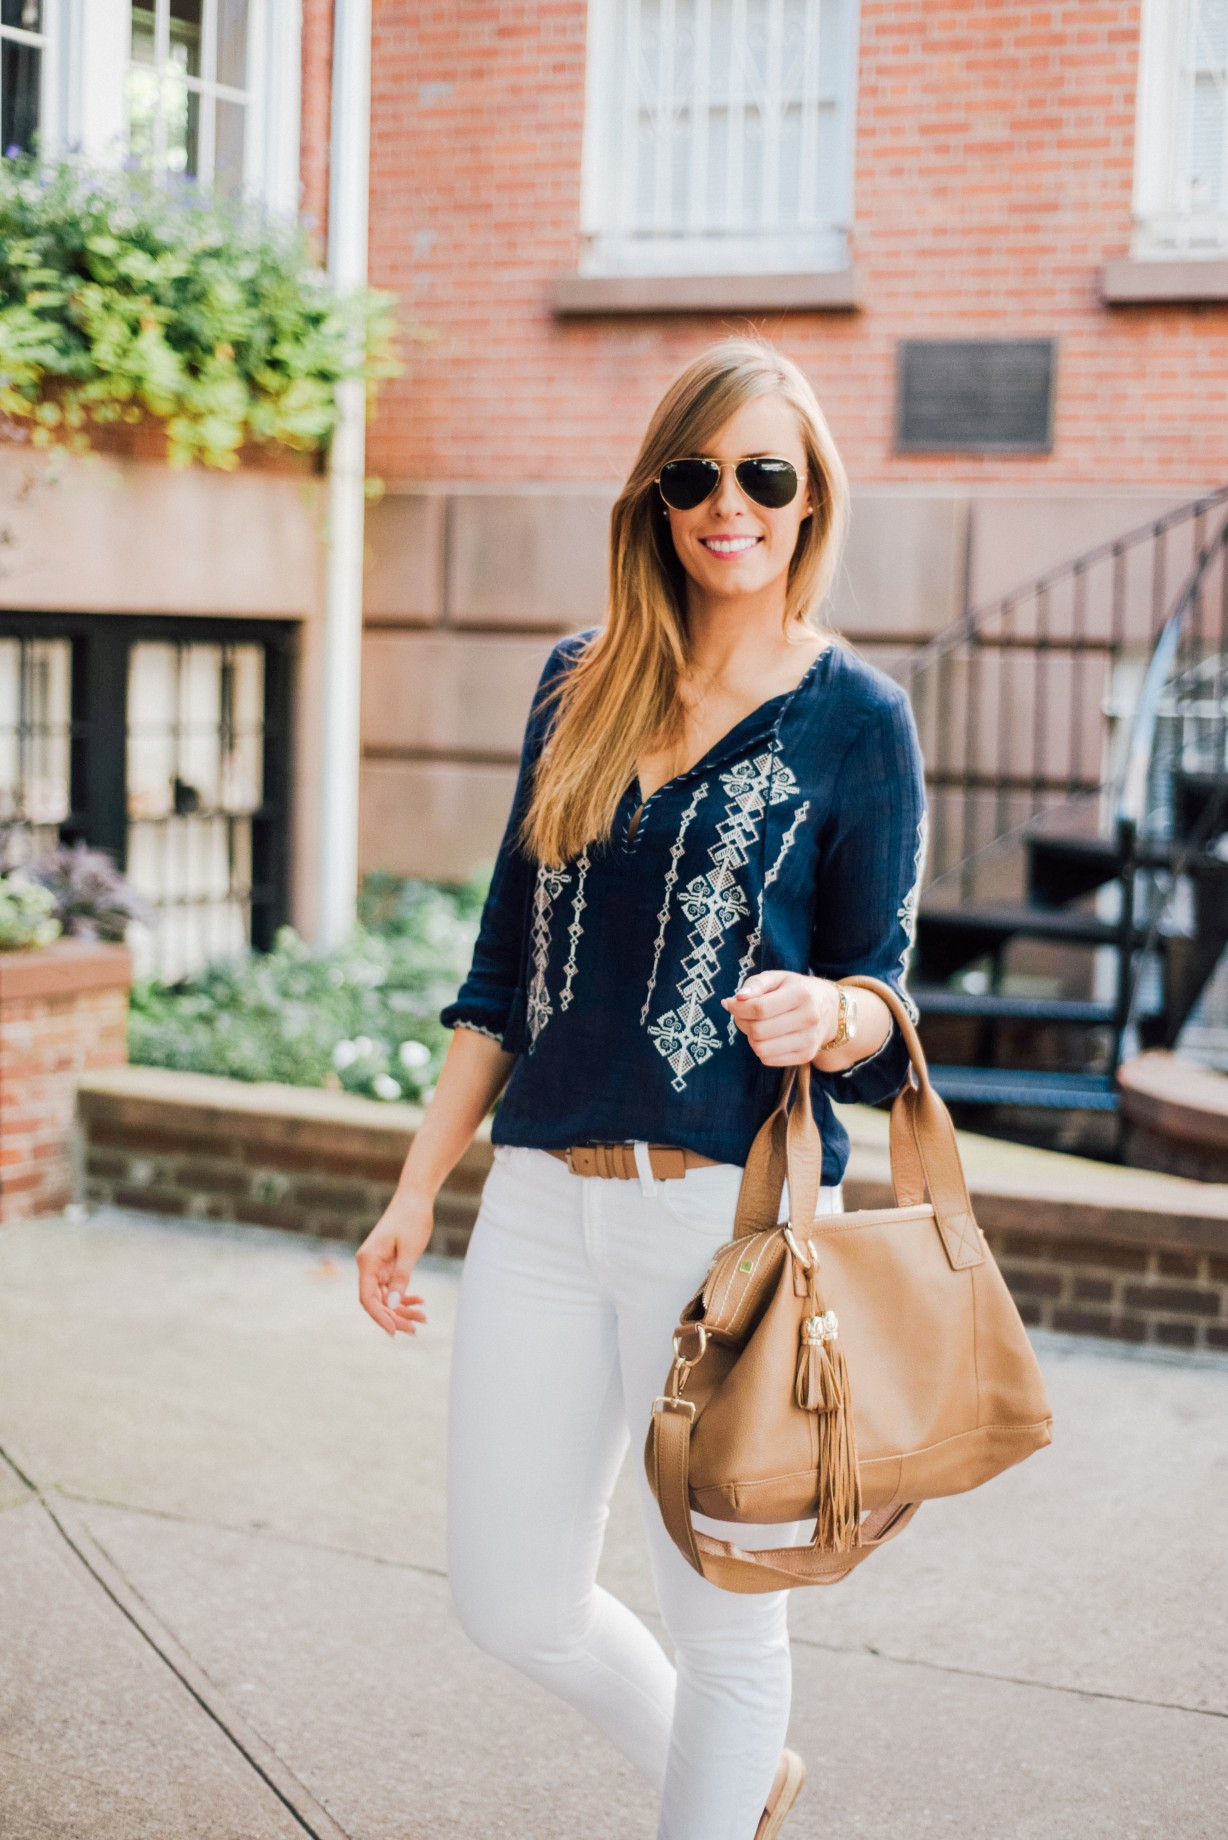 J Crew White Jeans Outfit Idea Boho Top Ray Ban Aviators Fashion Blogger West Village New York Lauren Slade Style Elixir 2